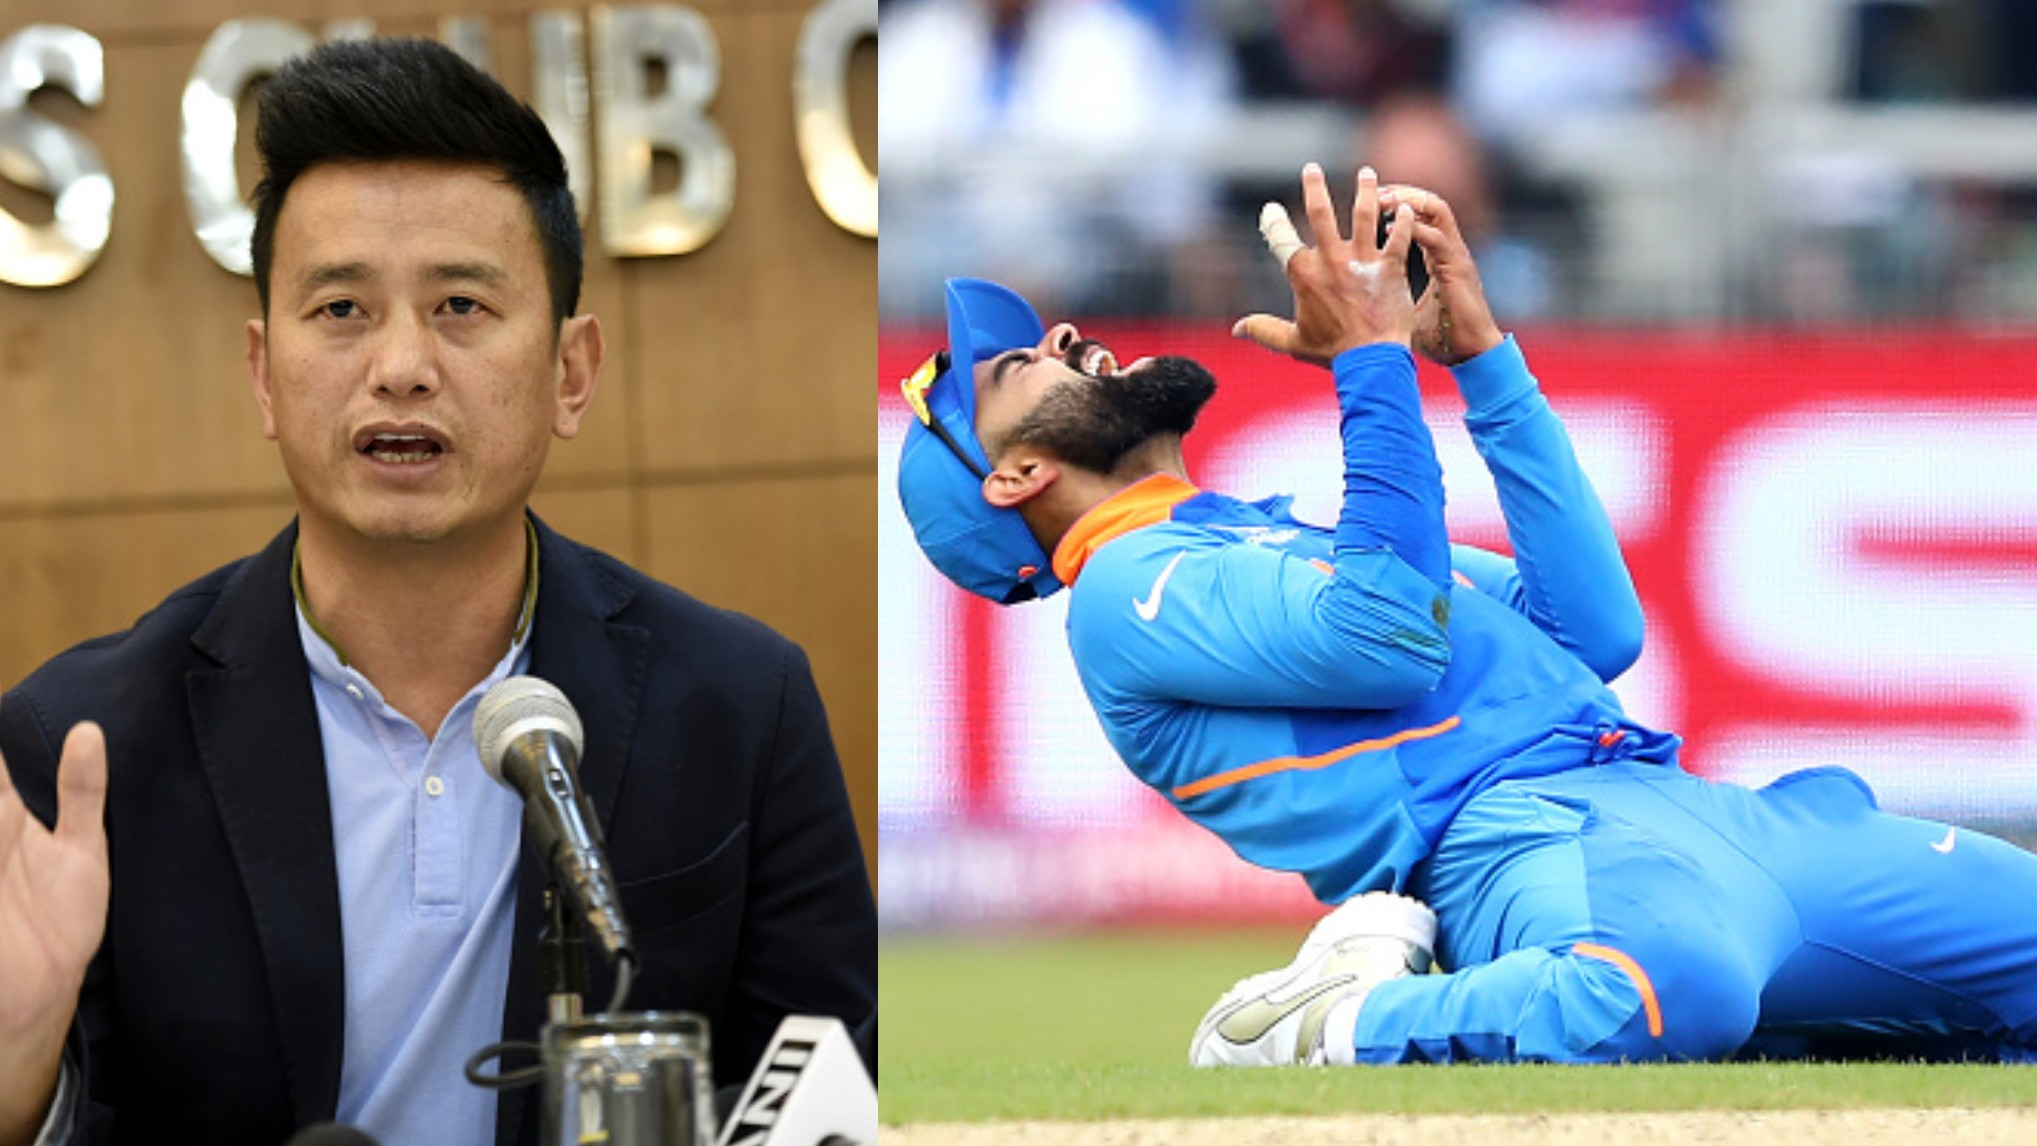 CWC 2019: Football great Bhaichung Bhutia says sometimes the best teams don't win on India's SF loss